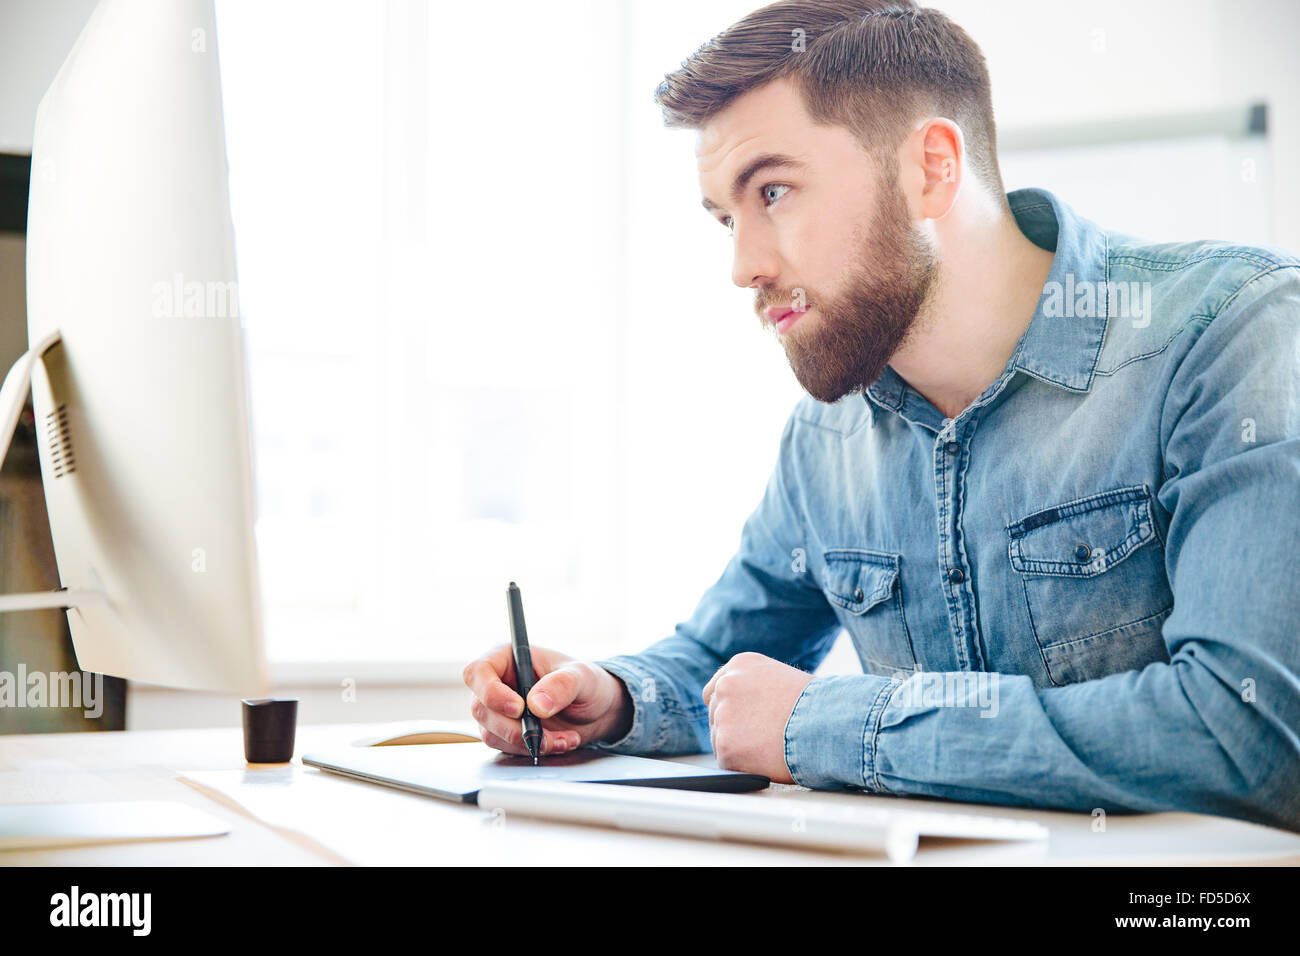 Concentrated handsome young designer with beard in blue shirt drawing using computer and graphic tablet in the office - Stock Image